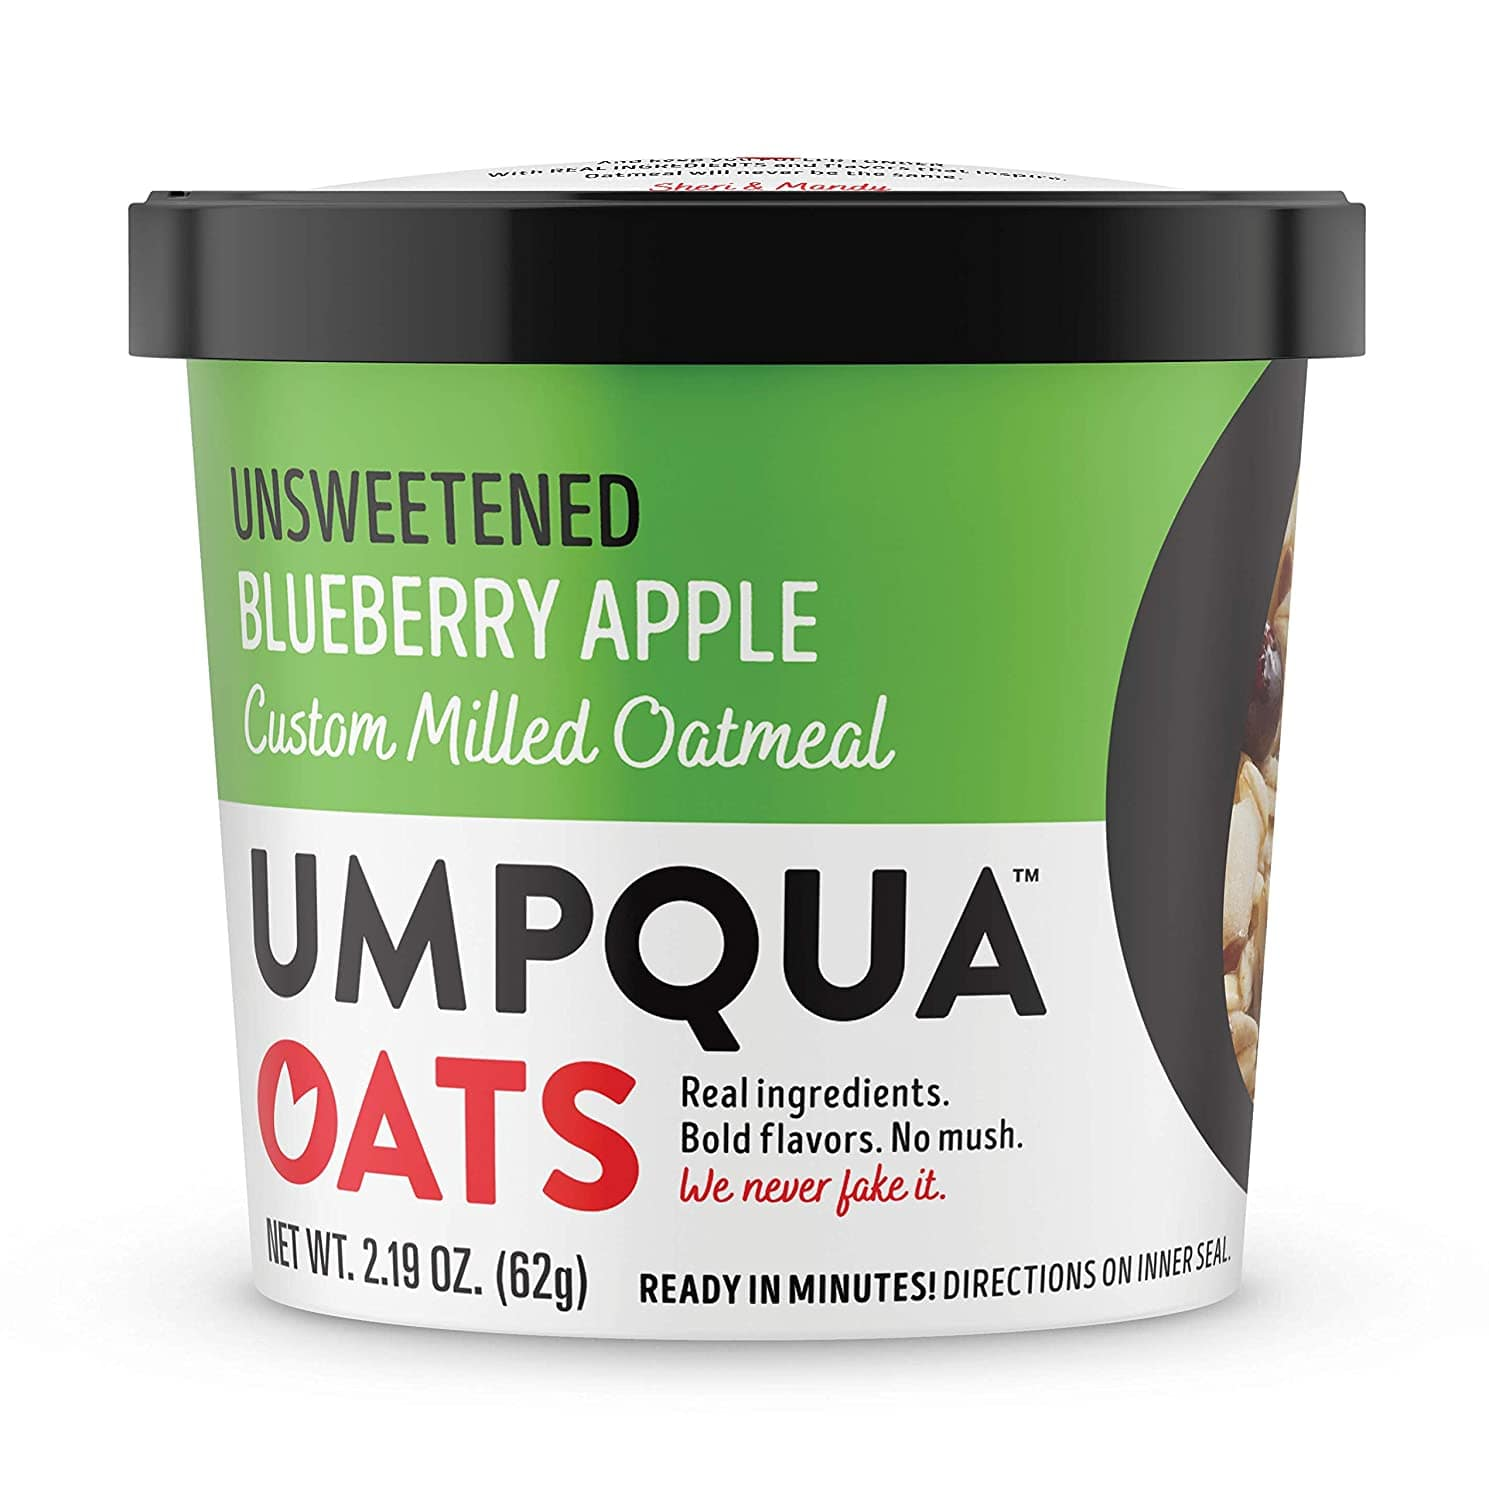 Umpqua Oats All Natural Oatmeal Cups, Unsweetened Blueberry Apple, 8 Count $3.69